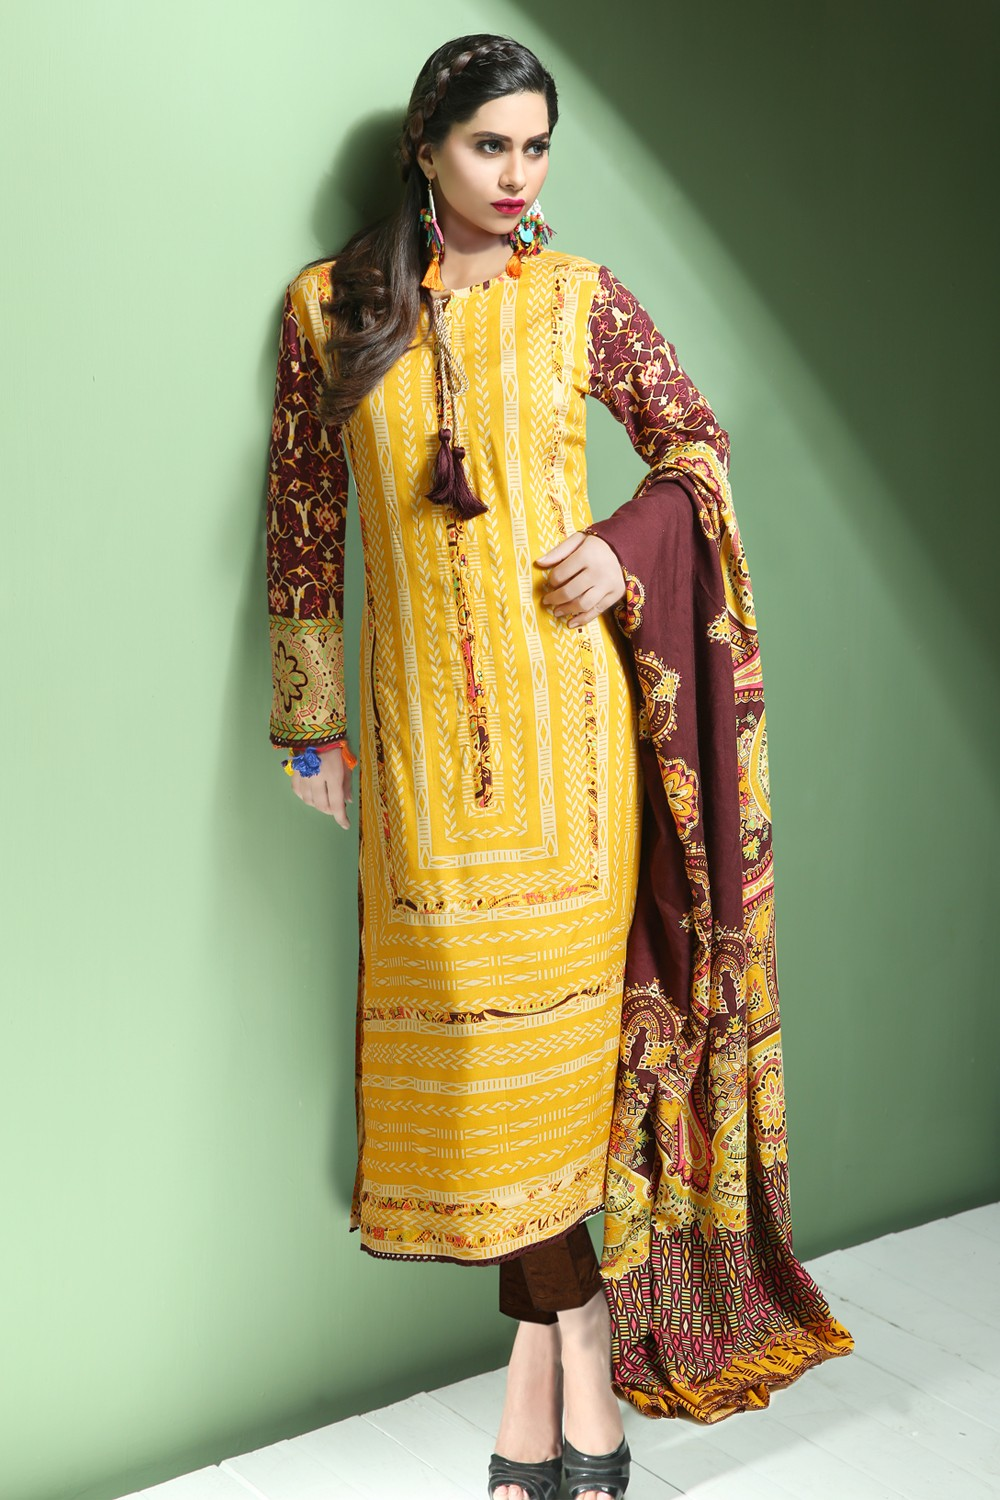 Nimsay Summer Collection 2020 Complete Catalog With Price ... |Nimsay New Collection